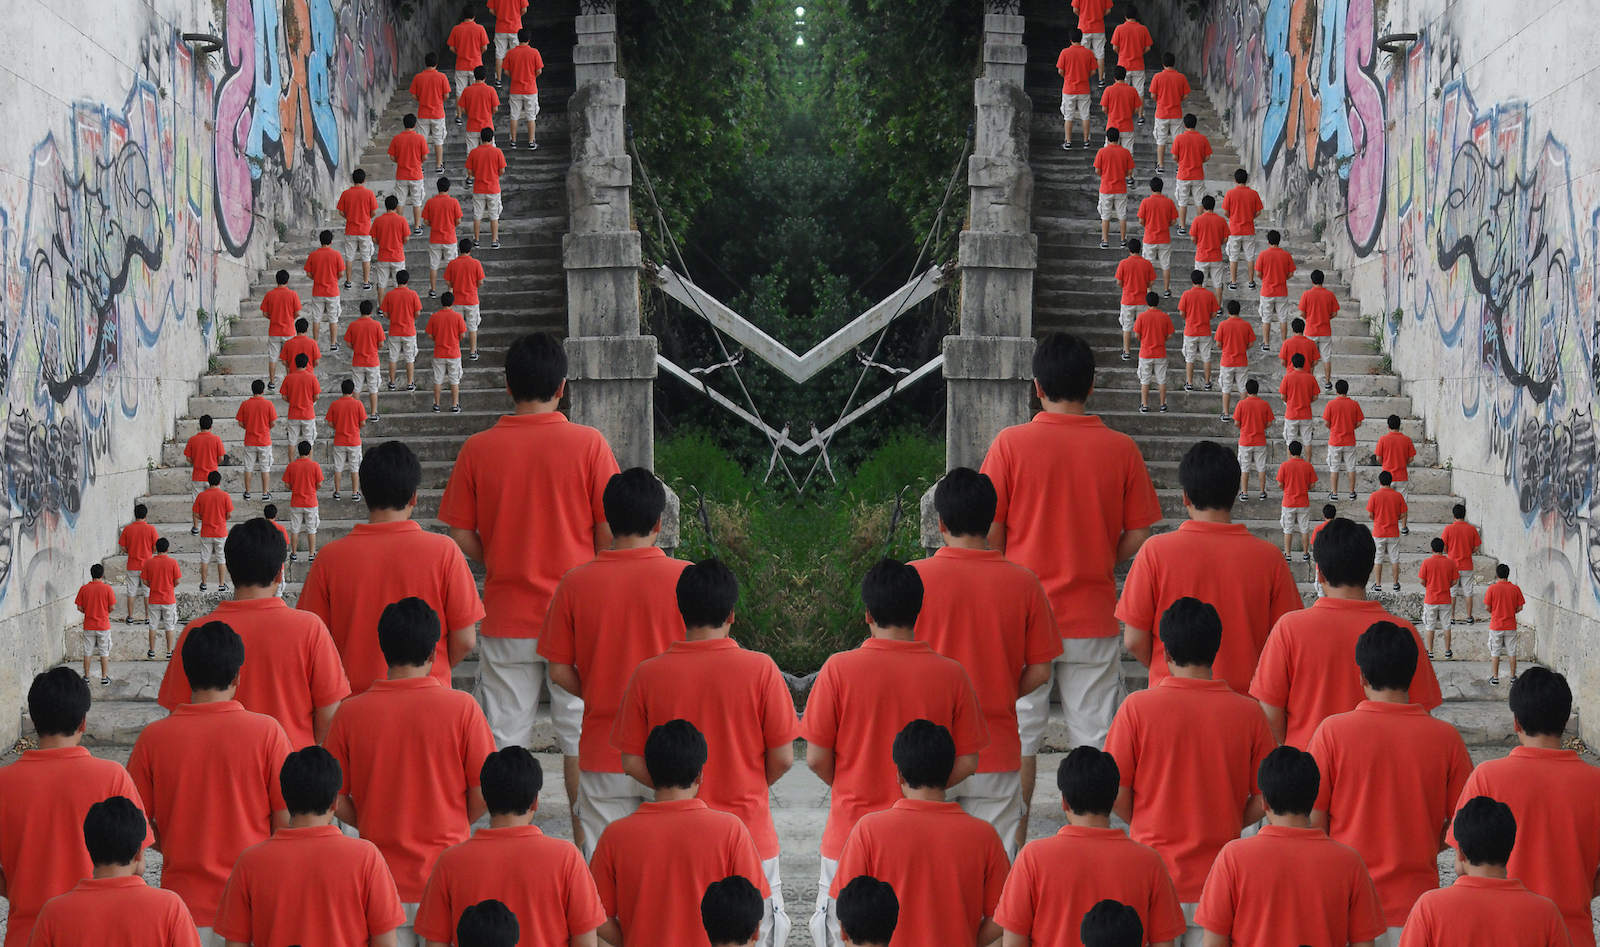 Mirrored image split down the center of a stair case covered in graffiti with the repeating image of a figure wearing a red shirt ascending the staircase.